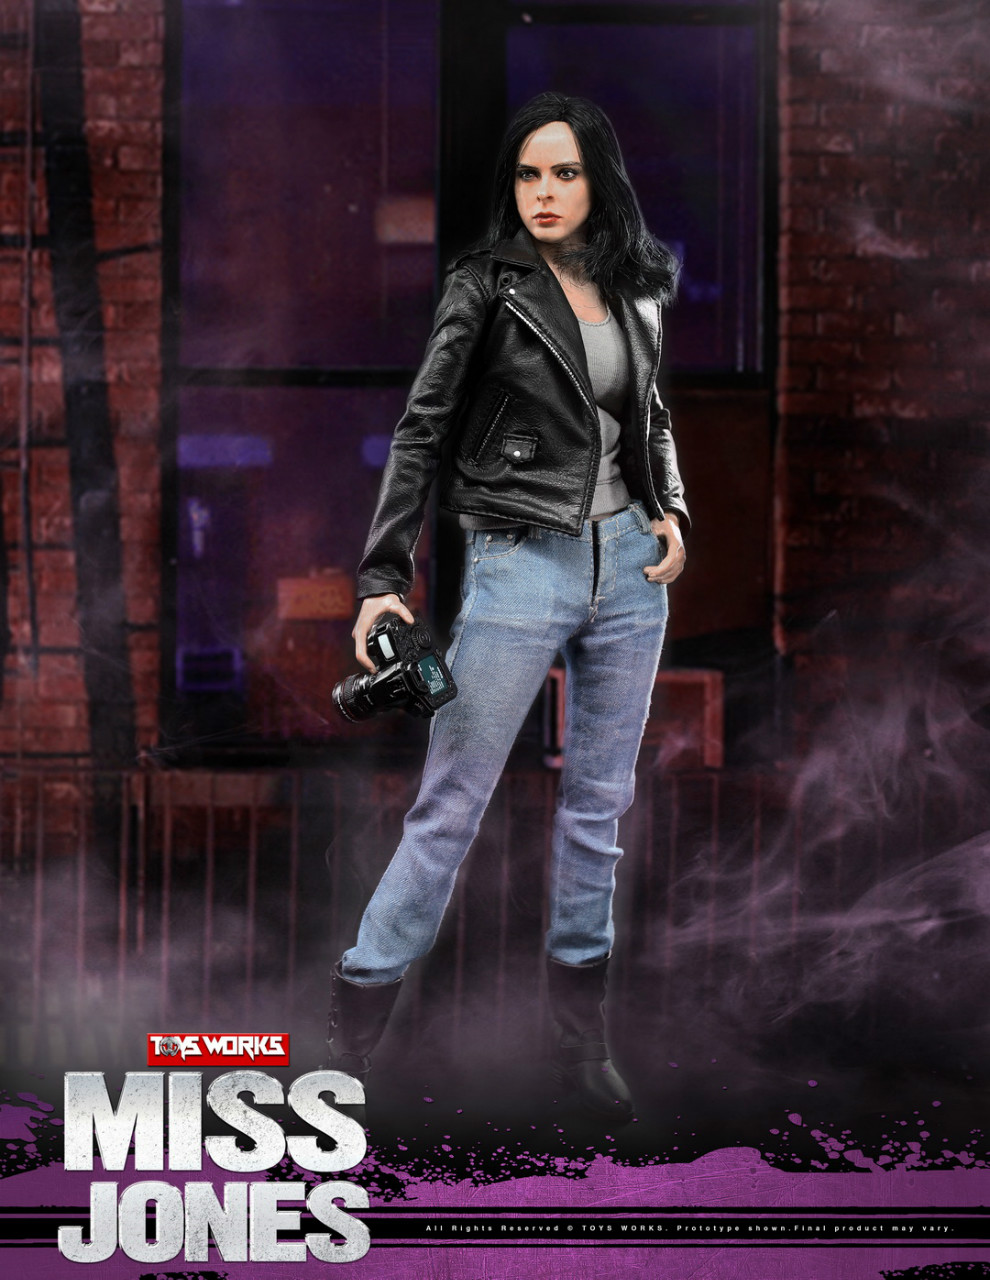 NEW PRODUCT: TOYS WORKS New: 1/6 Miss Jones Miss Jones can move TW007 19163613